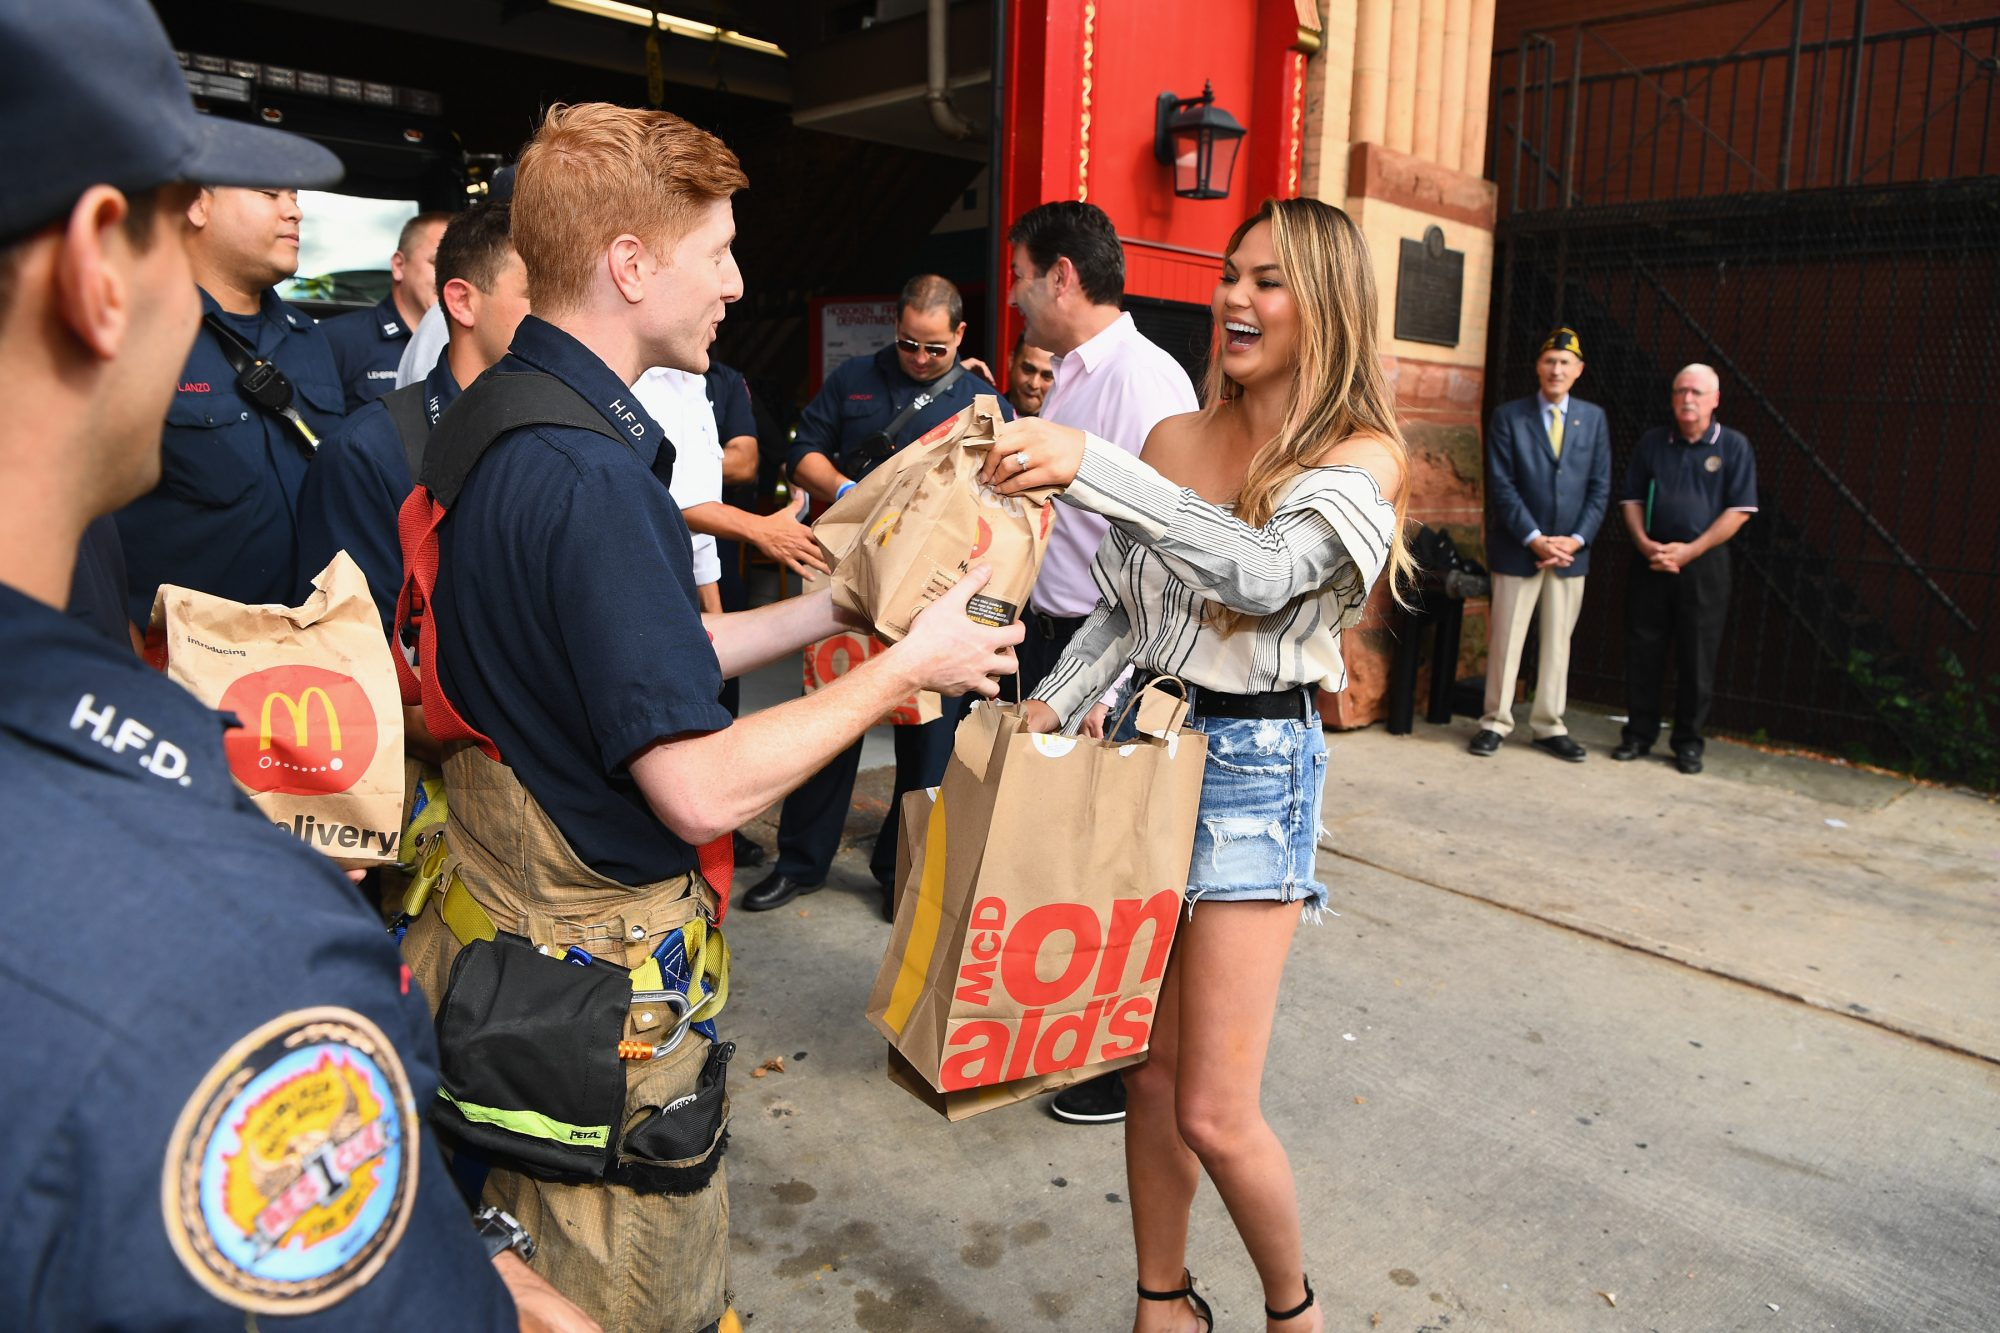 Chrissy Teigen Celebrates McDelivery Launch